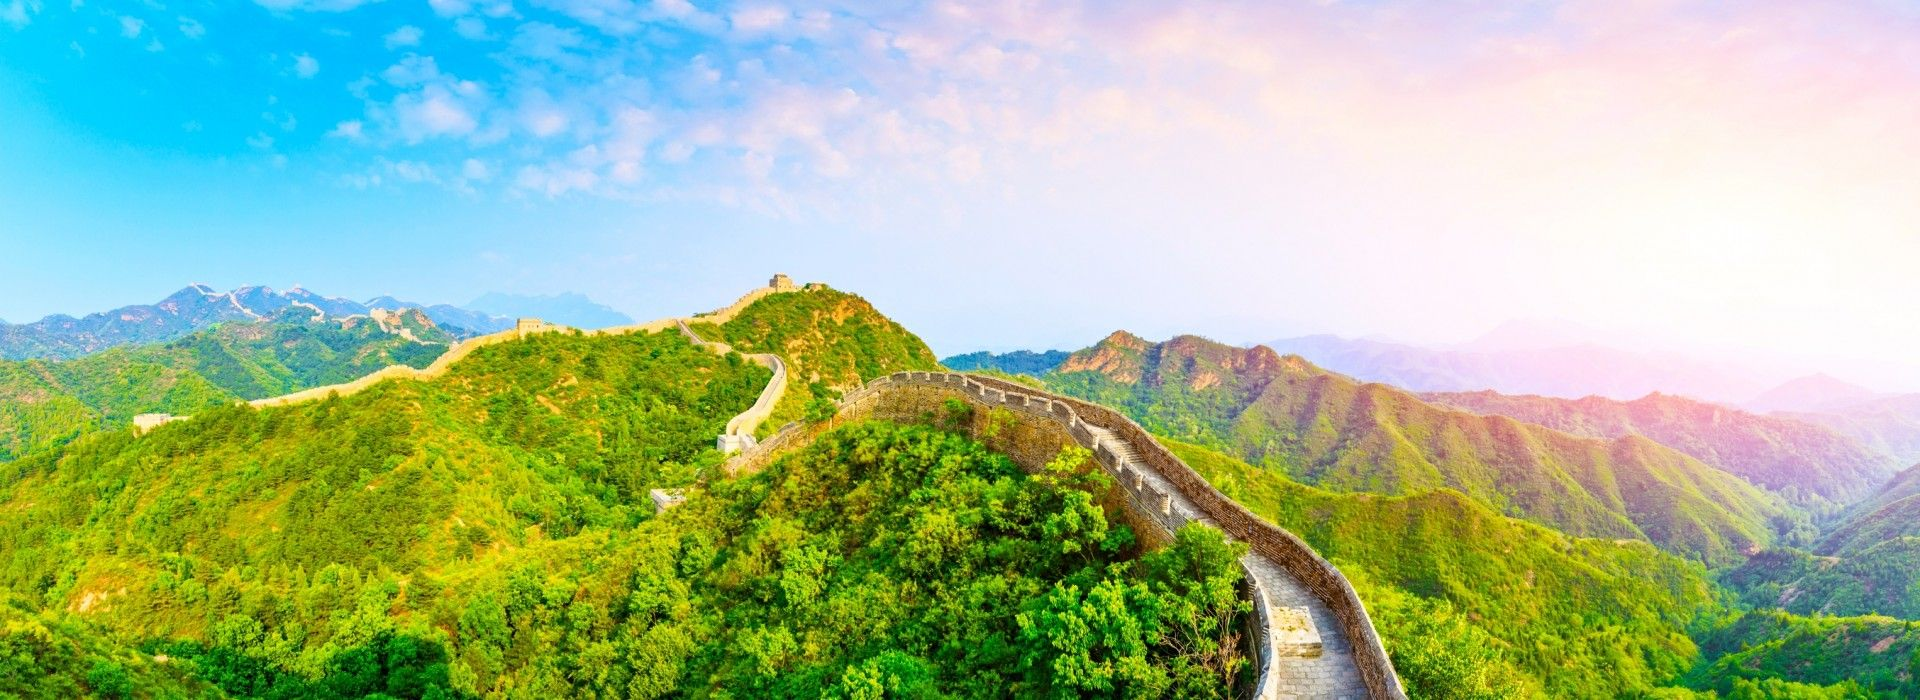 Sightseeing, attractions, culture and history Tours in Xian